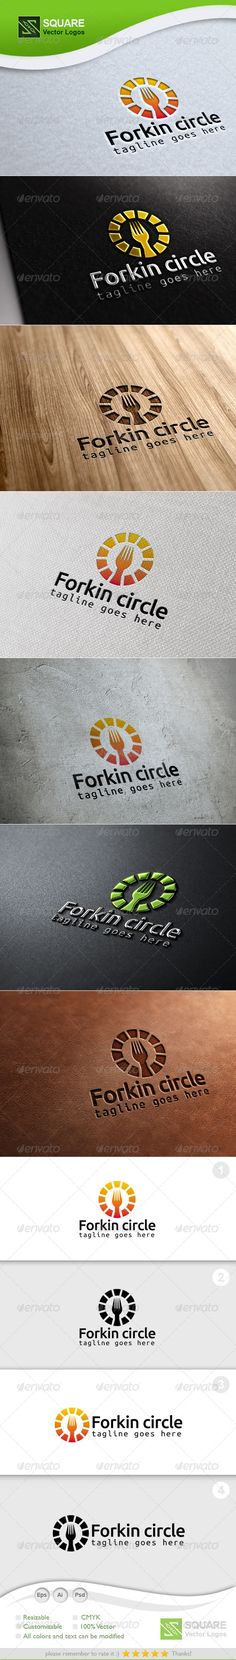 Circle, Fork Vector Logo Template — Photoshop PSD #noodles #lunch • Available here → https://graphicriver.net/item/circle-fork-vector-logo-template/7047415?ref=pxcr